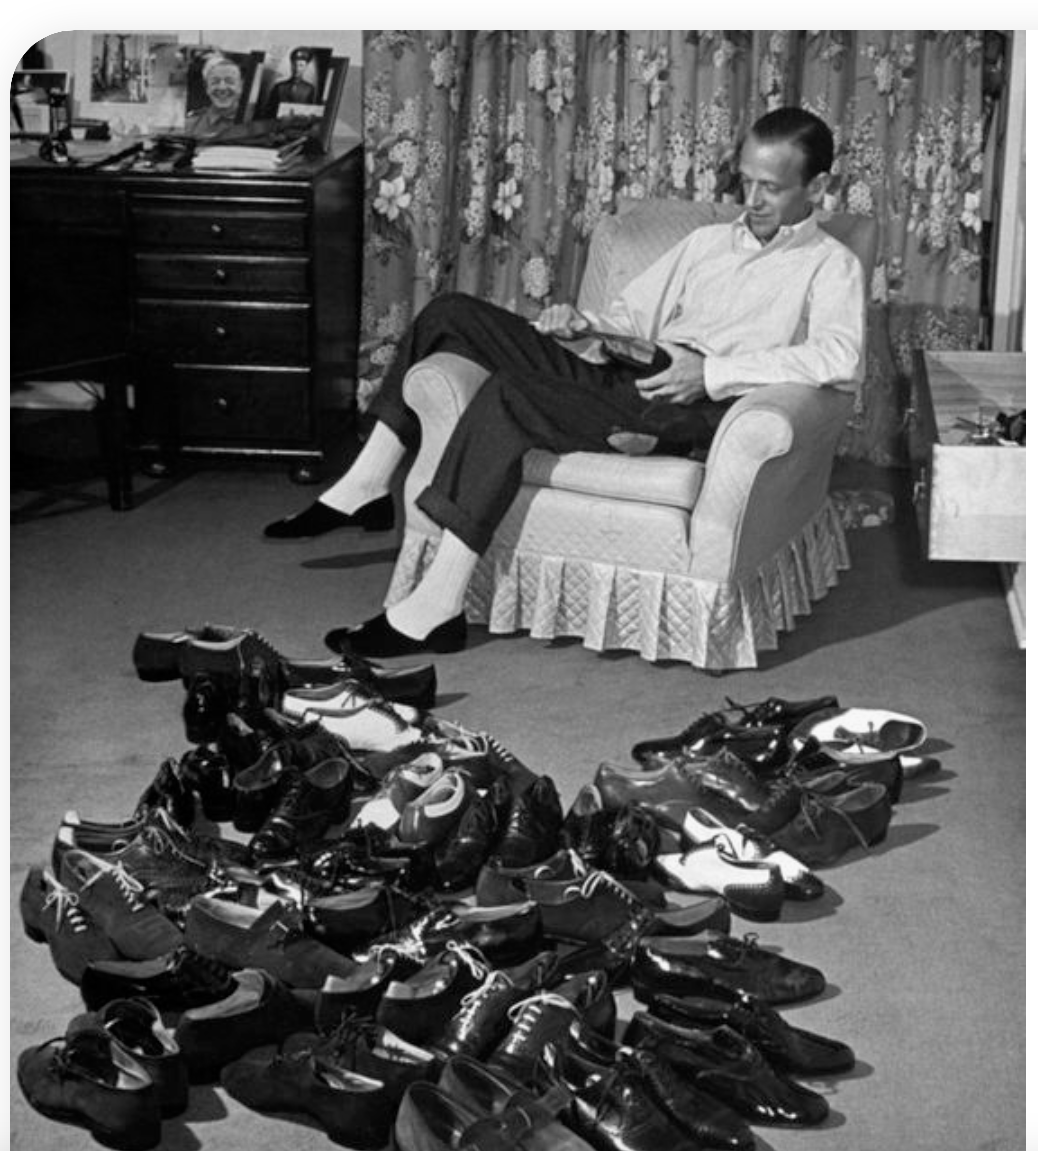 Fred Astaire and his shoes. https://t.co/8YV6mW6WfS